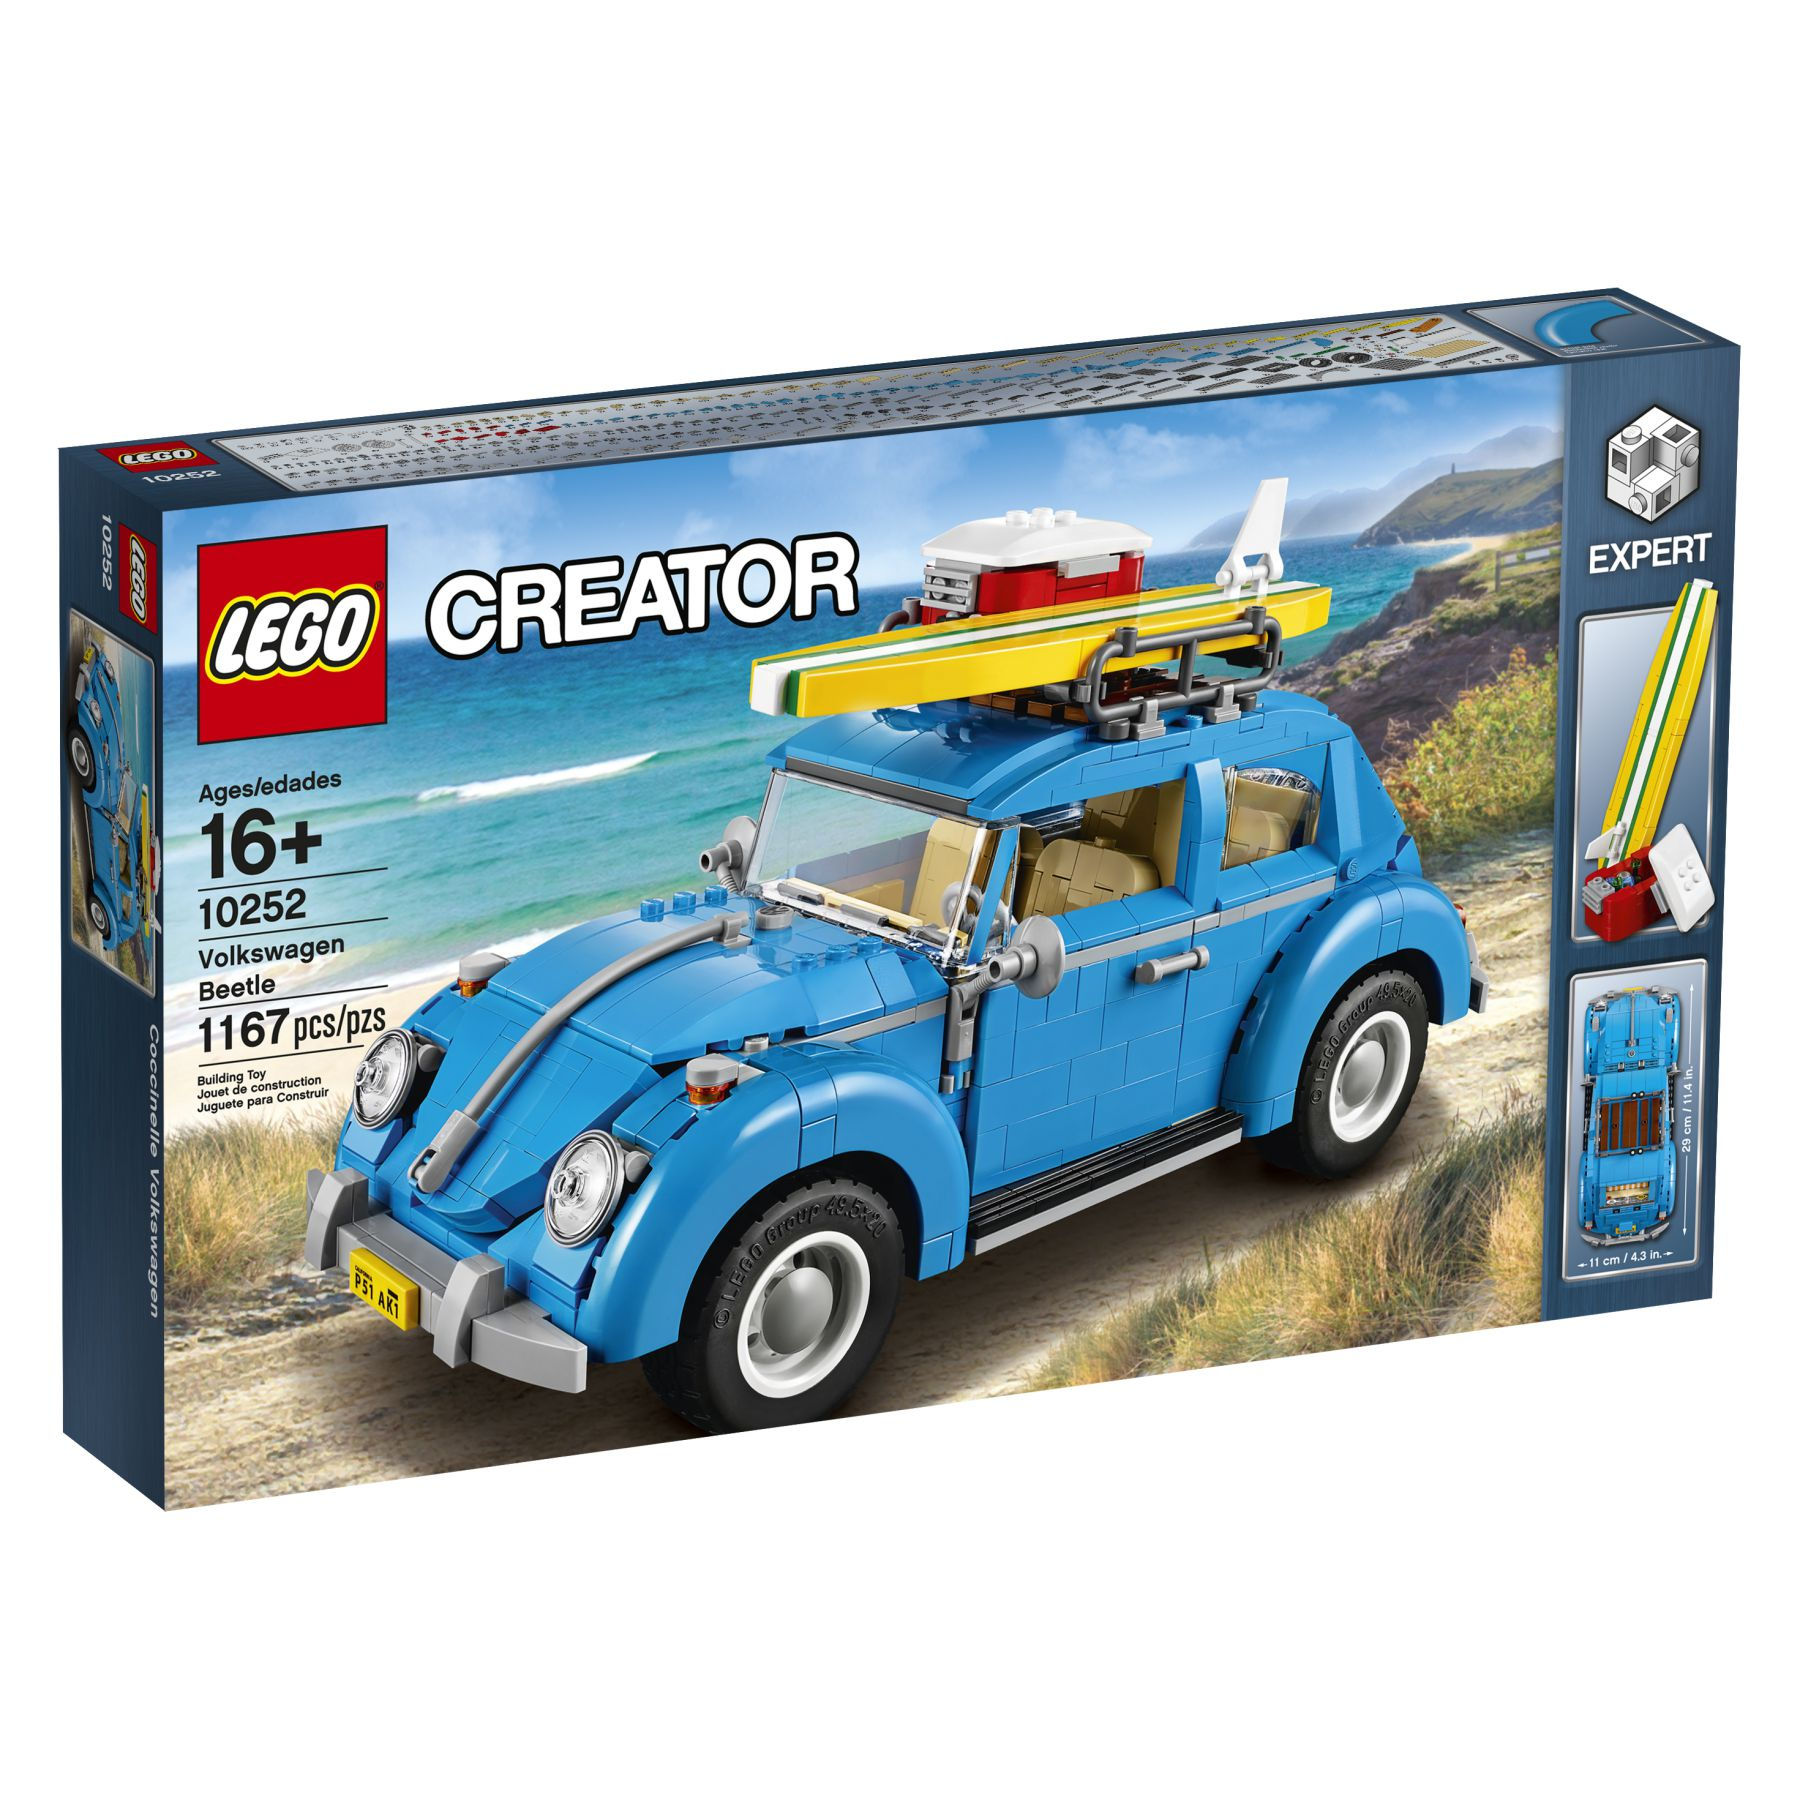 LEGO Advanced Models 10252 VW Käfer LEGO_10252_Volkswagen_Beetle_04.jpg